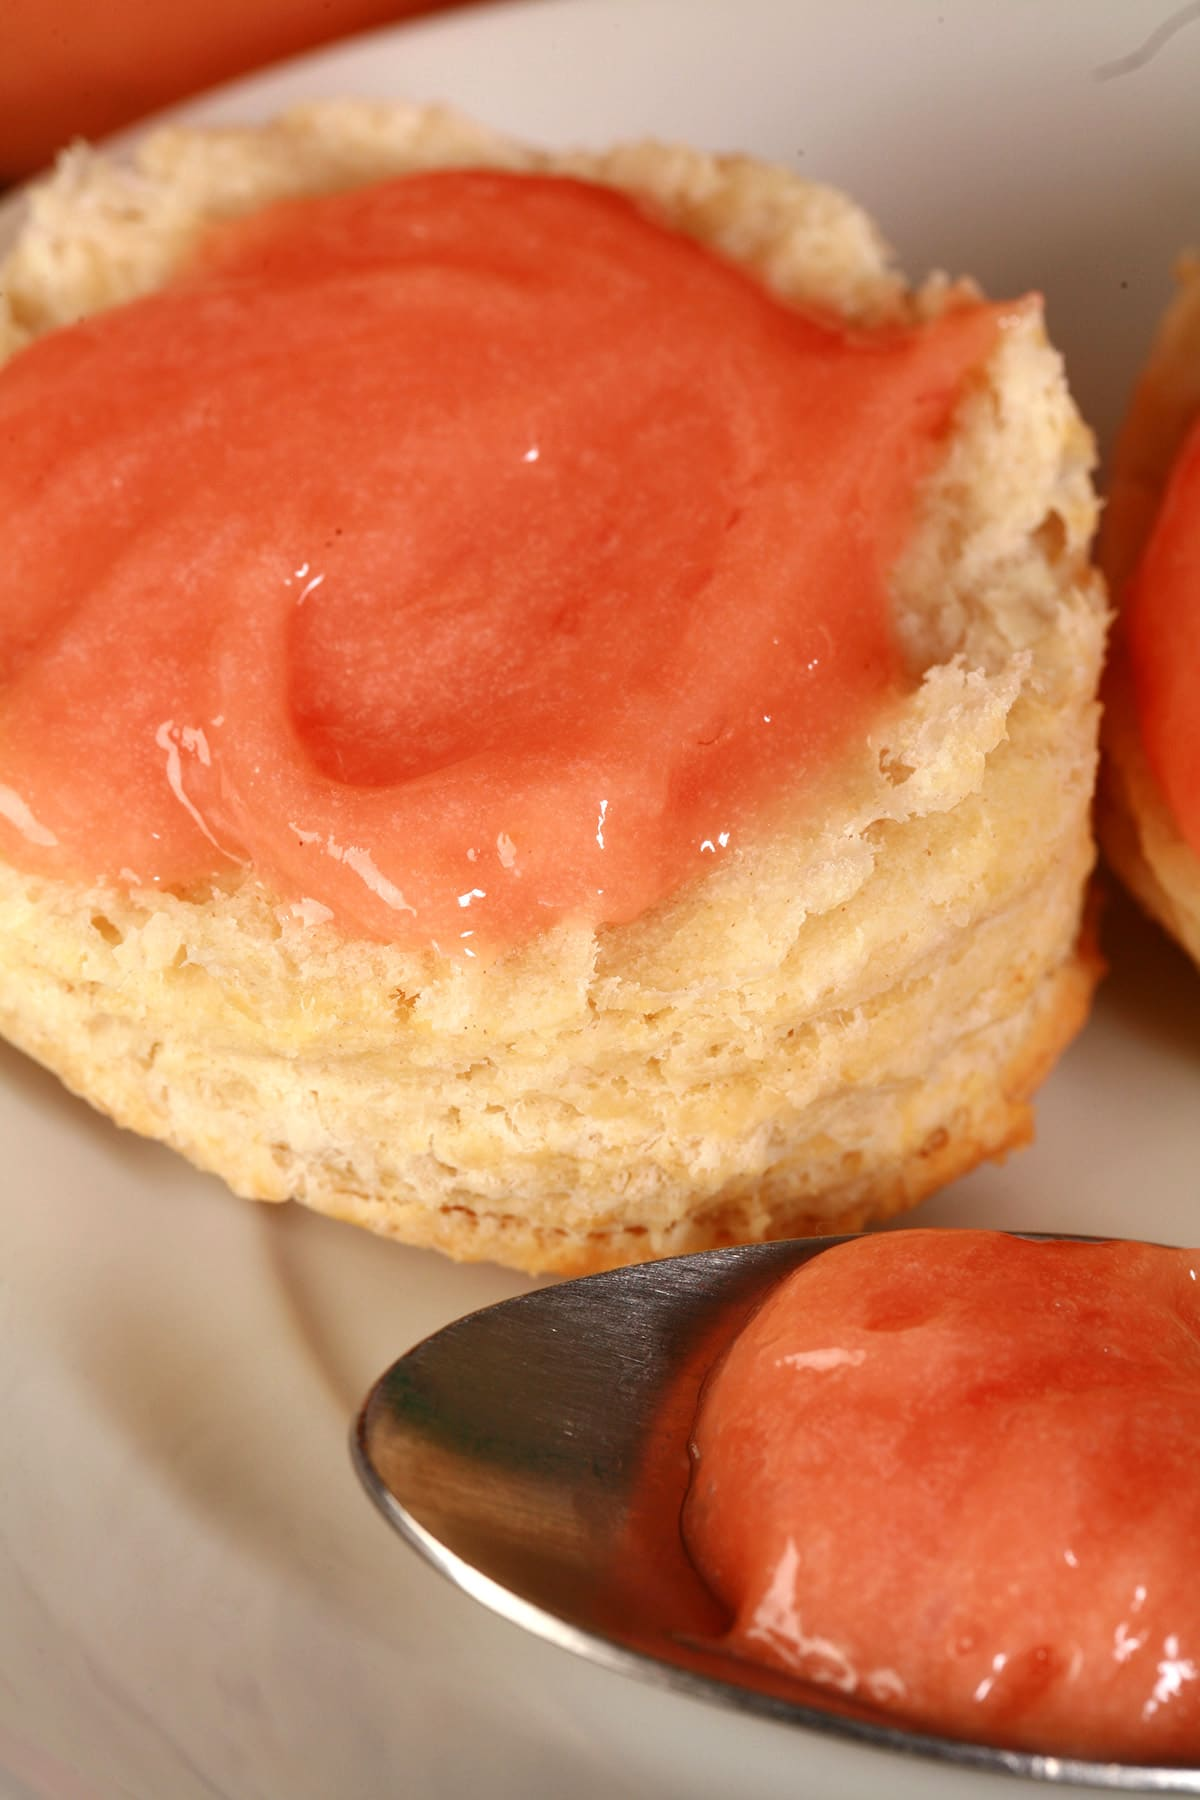 A raspberry curd covered biscuit on a plate, along with a spoon of the pink curd.